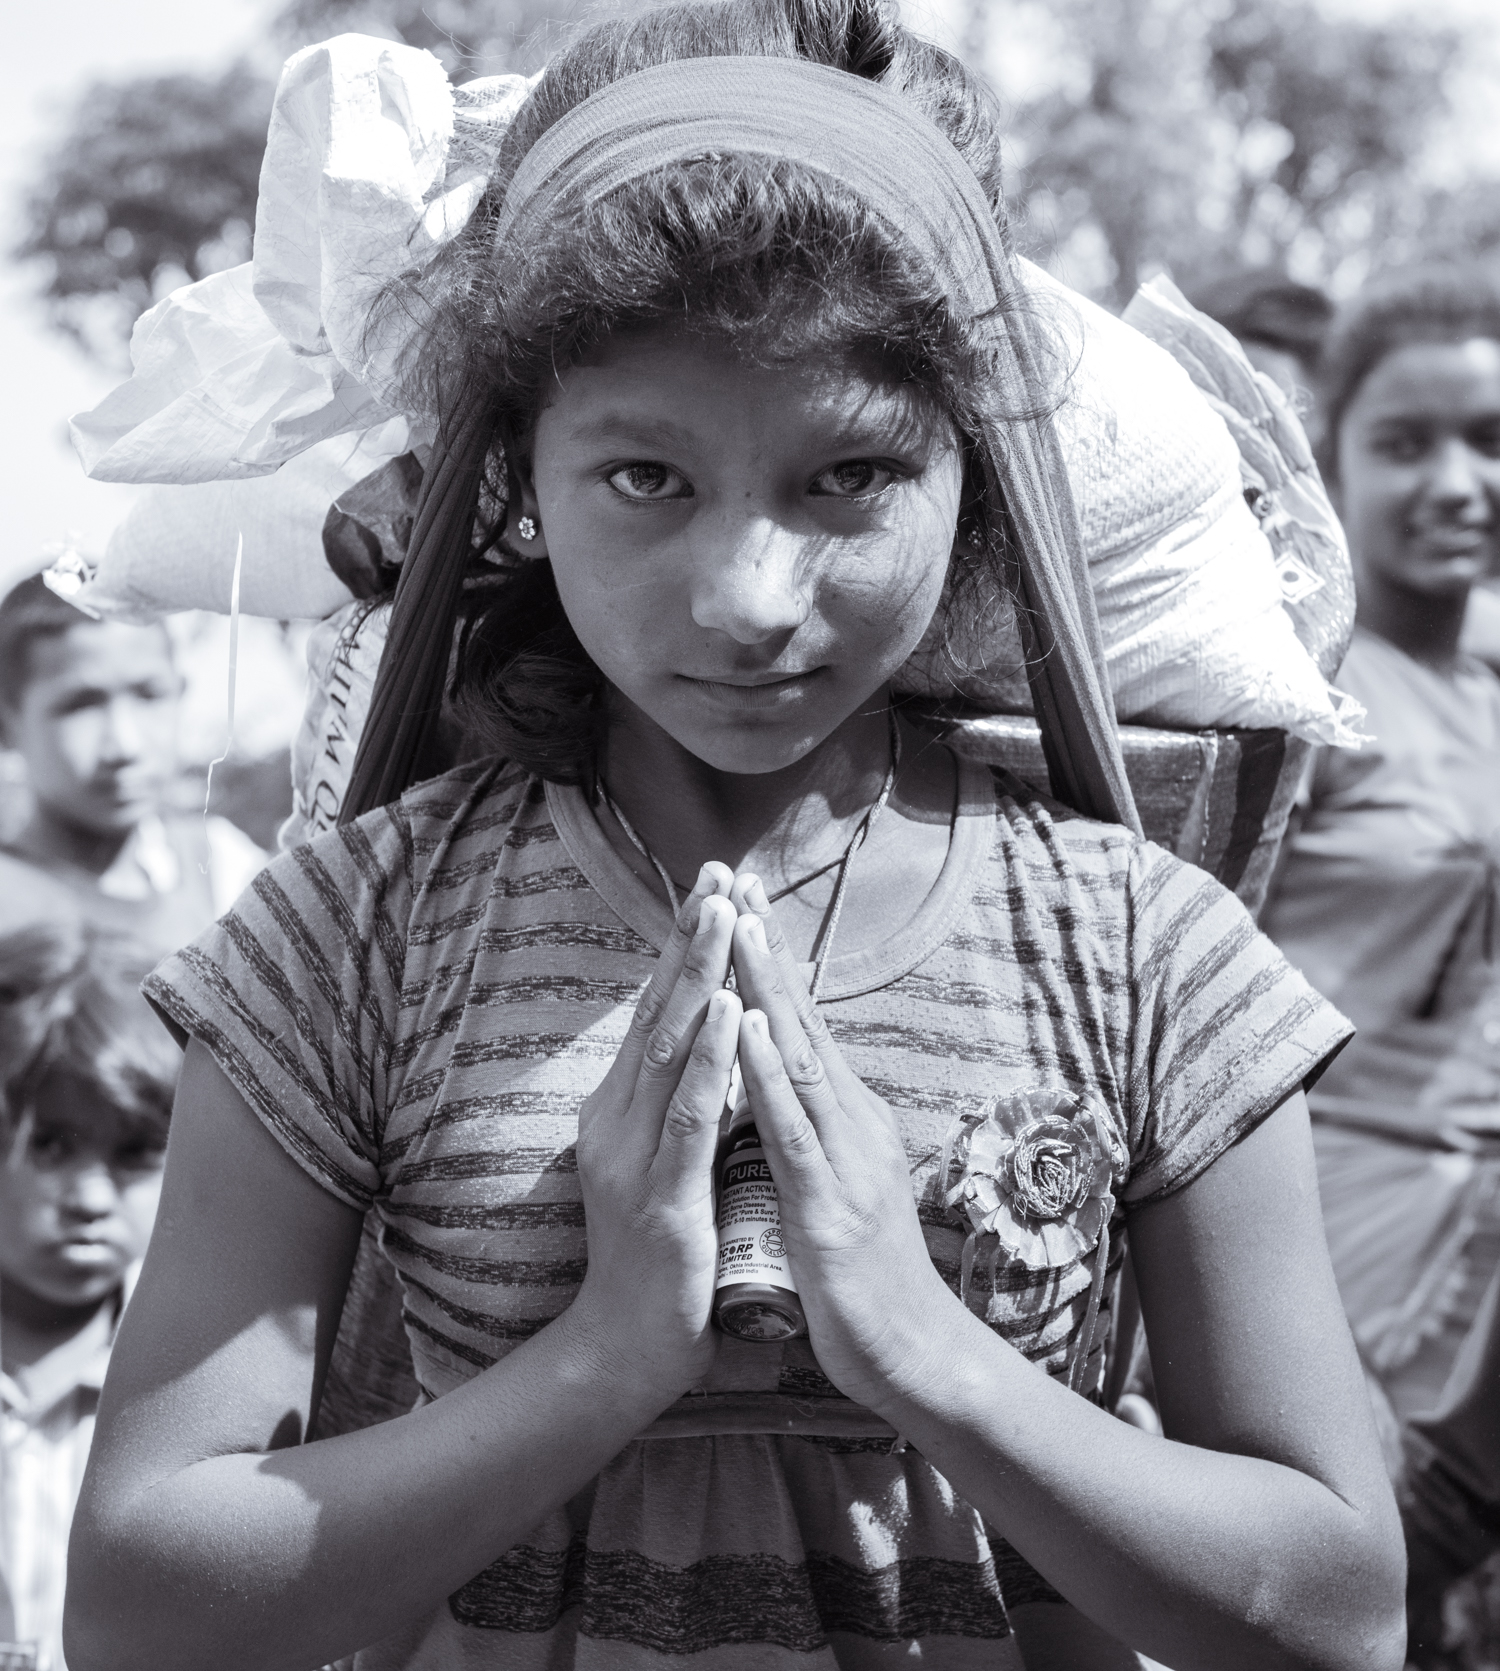 A poor girl greets with a 'Namaste' as we give her supplies to bring back to her family. She lost both of her parents in the earthquake and is currently living with her grandparents.